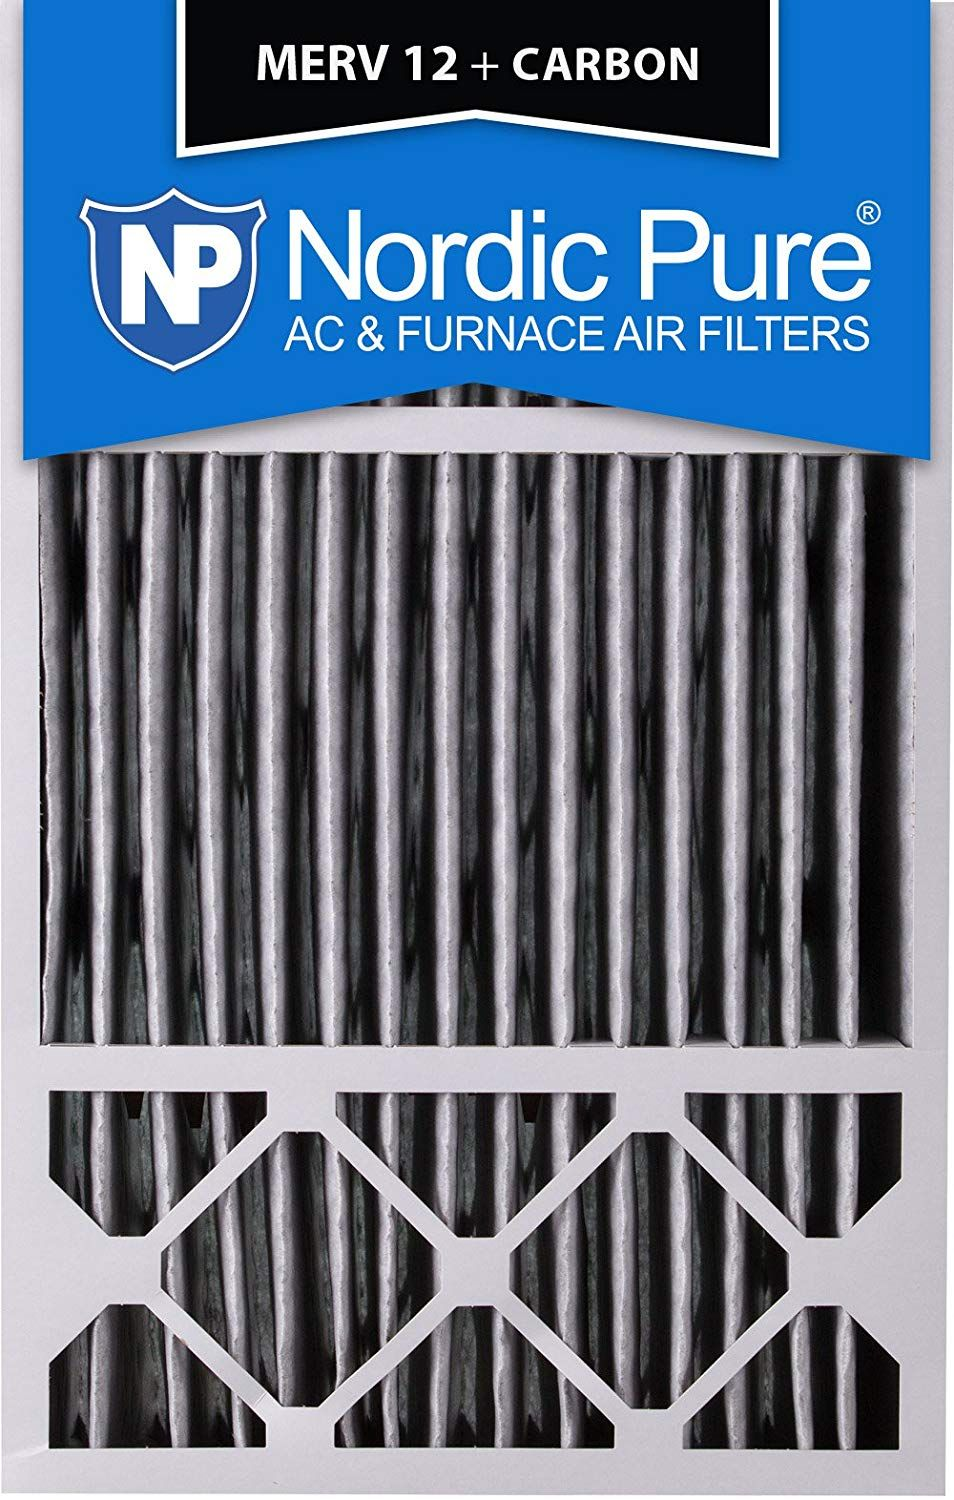 Nordic Pure 16x25x4 16x25x5 4 3 8 Actual Depth Merv 12 Pleated Plus Carbon Honeywell Fc100a1029 Replacement Ac Furnace Air Ac Furnace Carbon Air Filter Merv